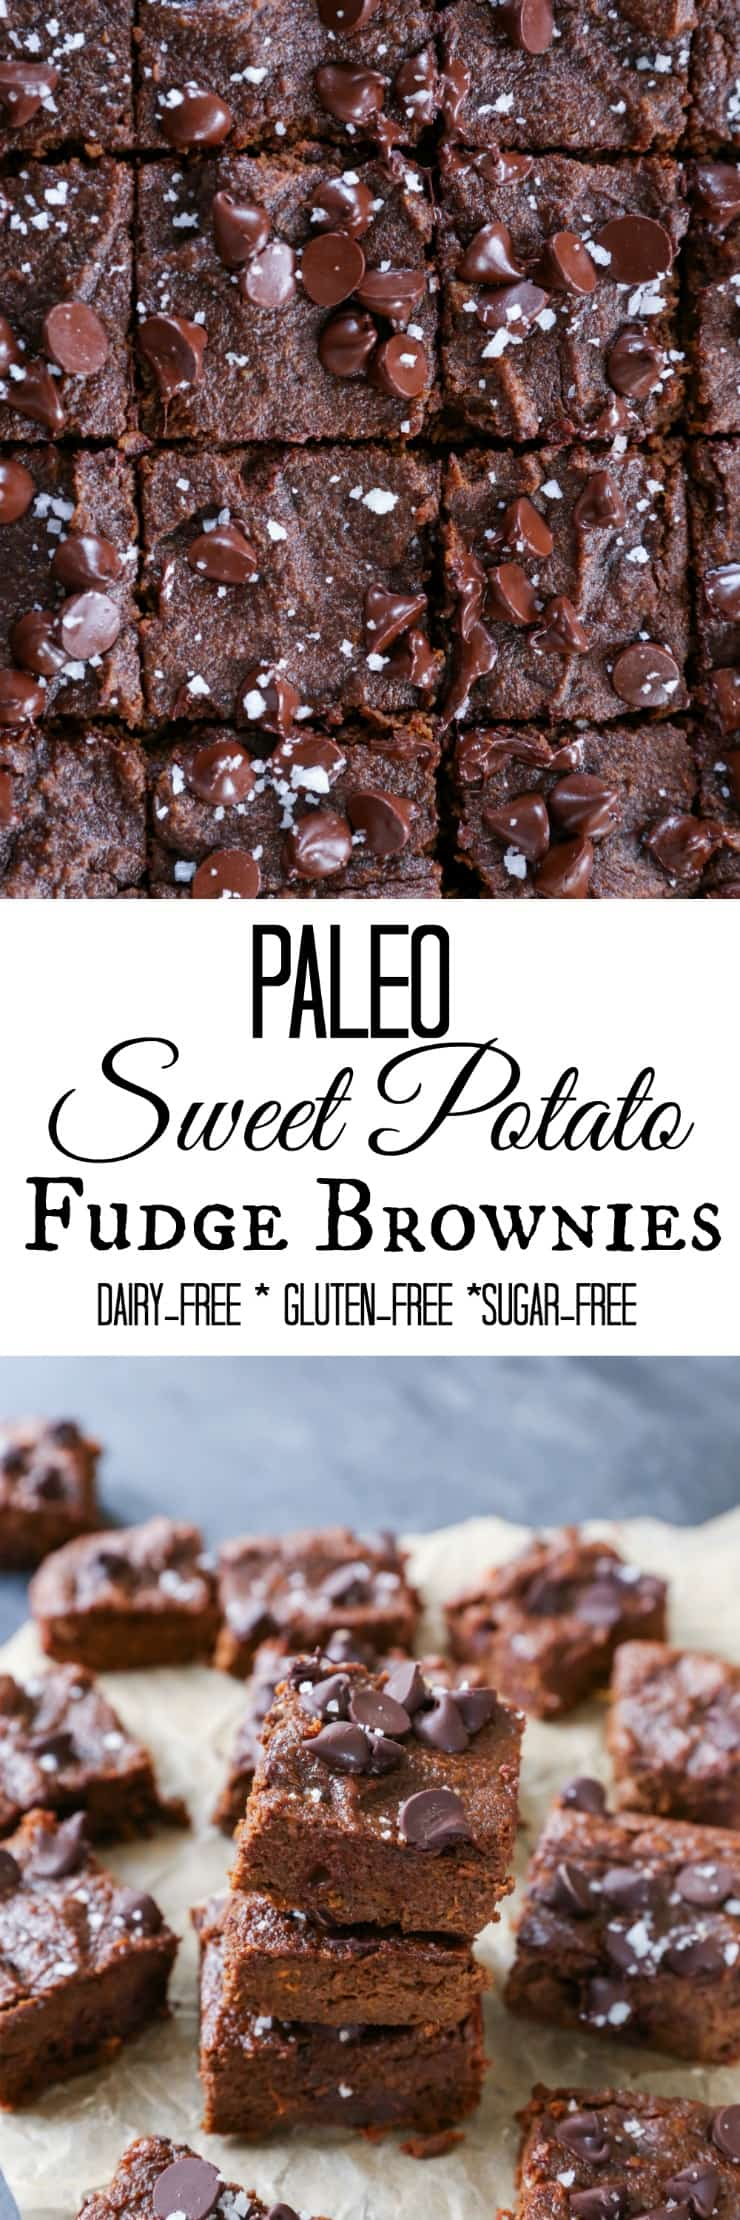 Paleo Sweet Potato Fudge Brownies - made in your blender with sweet potato, coconut flour, and pure maple syrup - gluten-free, dairy-free, paleo-friendly!